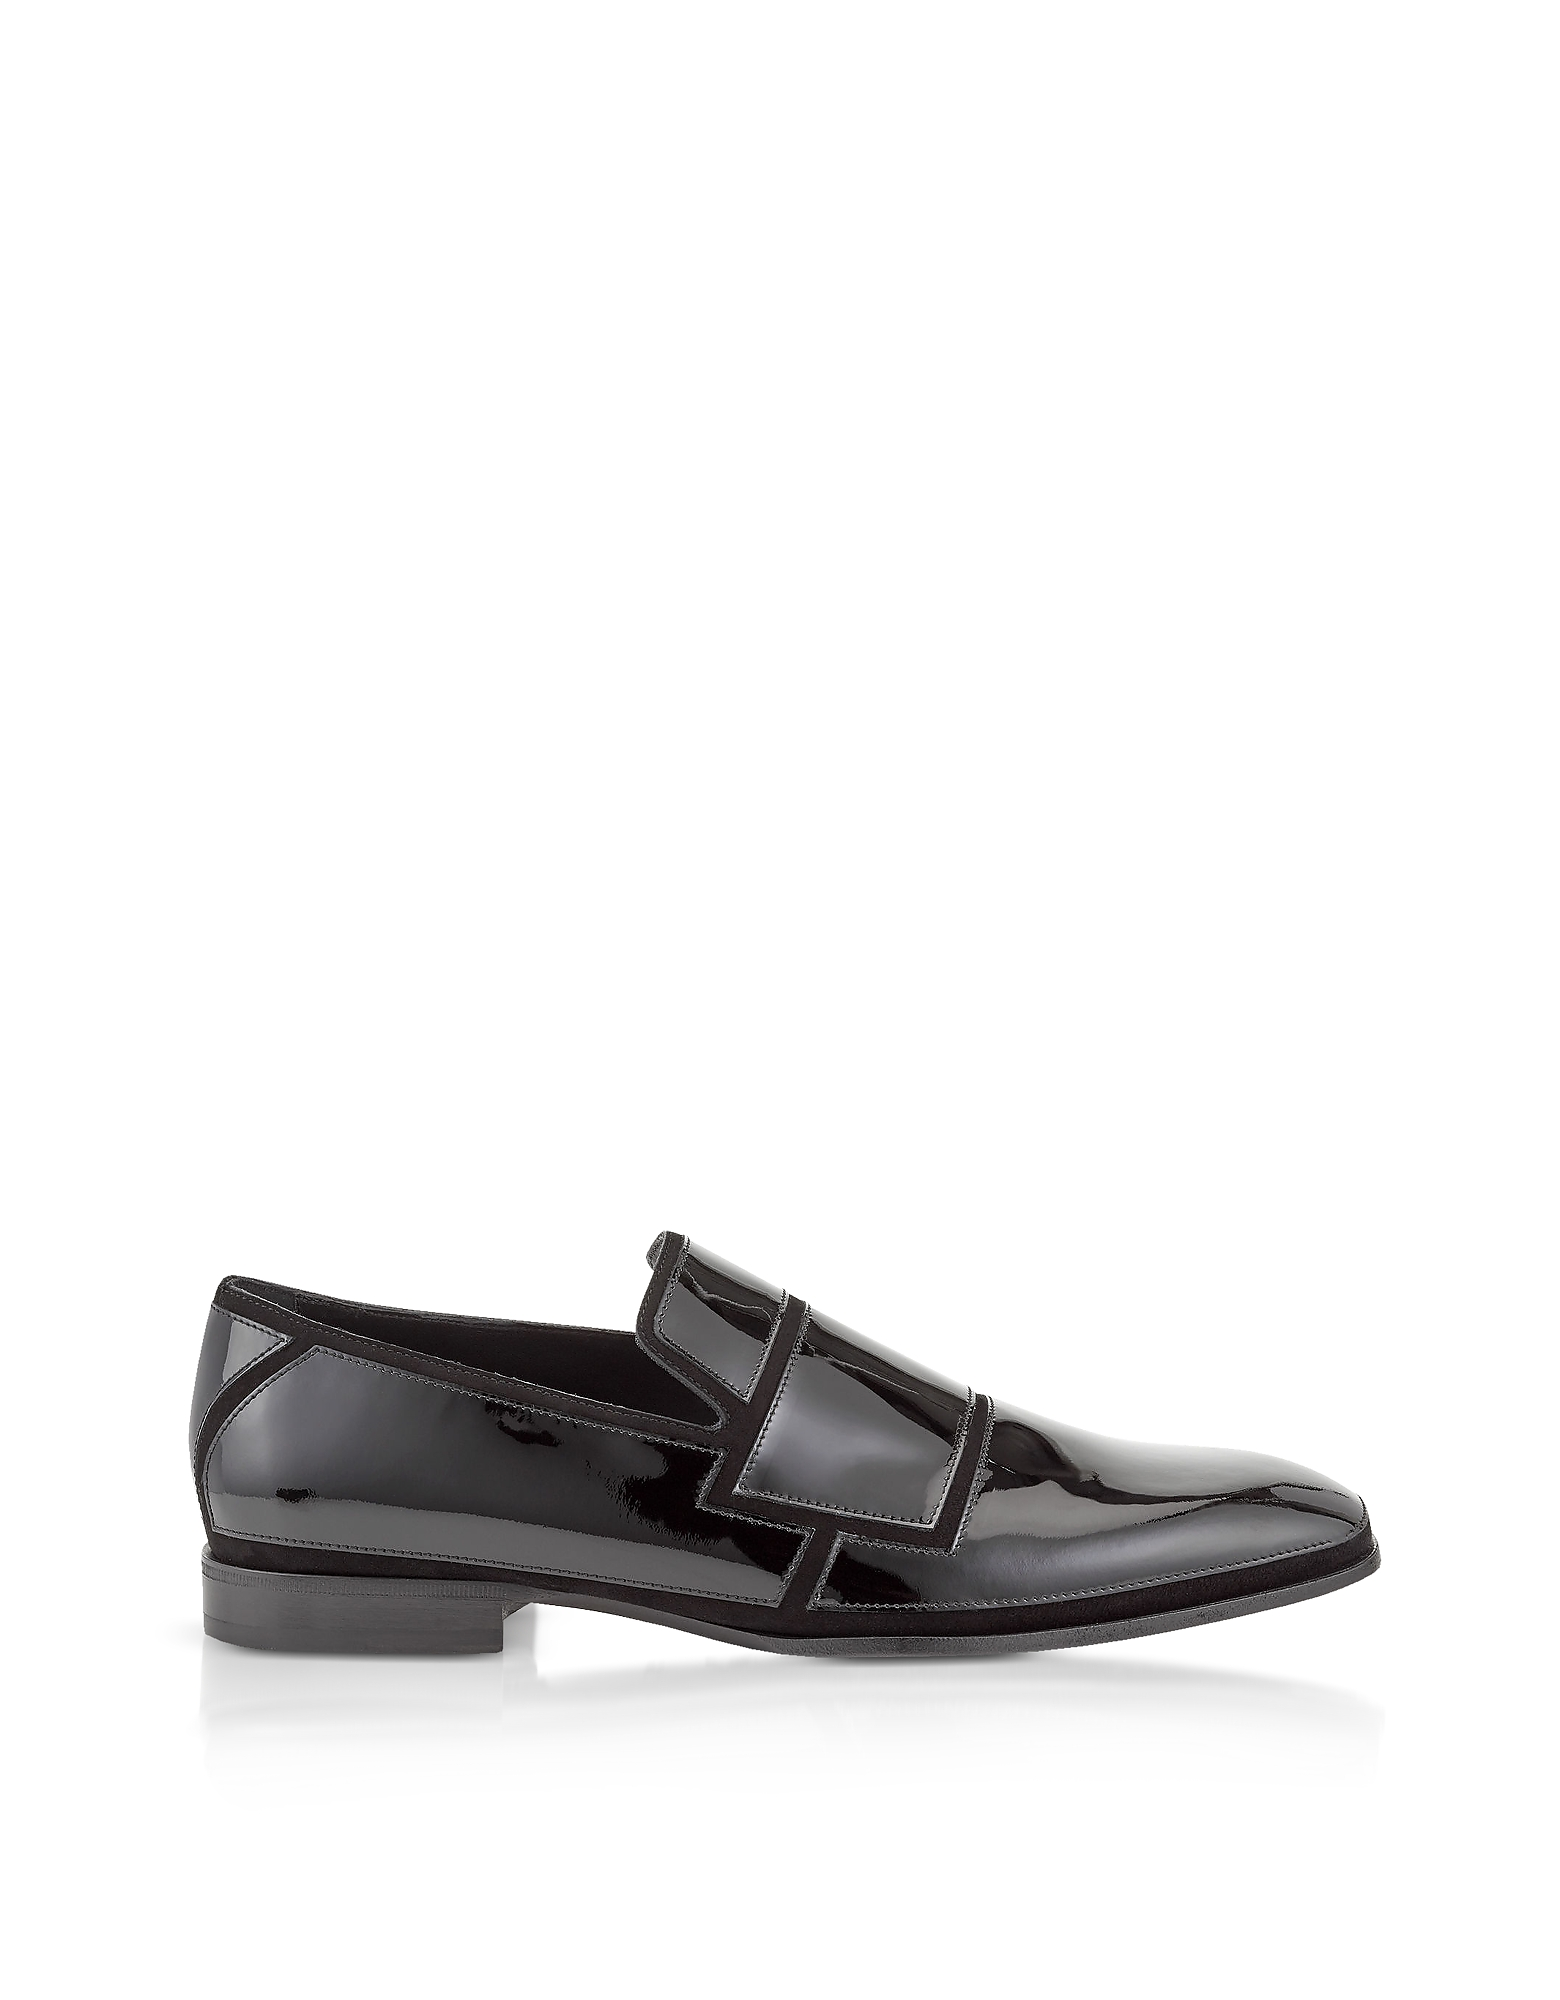 Jimmy Choo Shoes, Black Suede and Patent Spencer Loafers